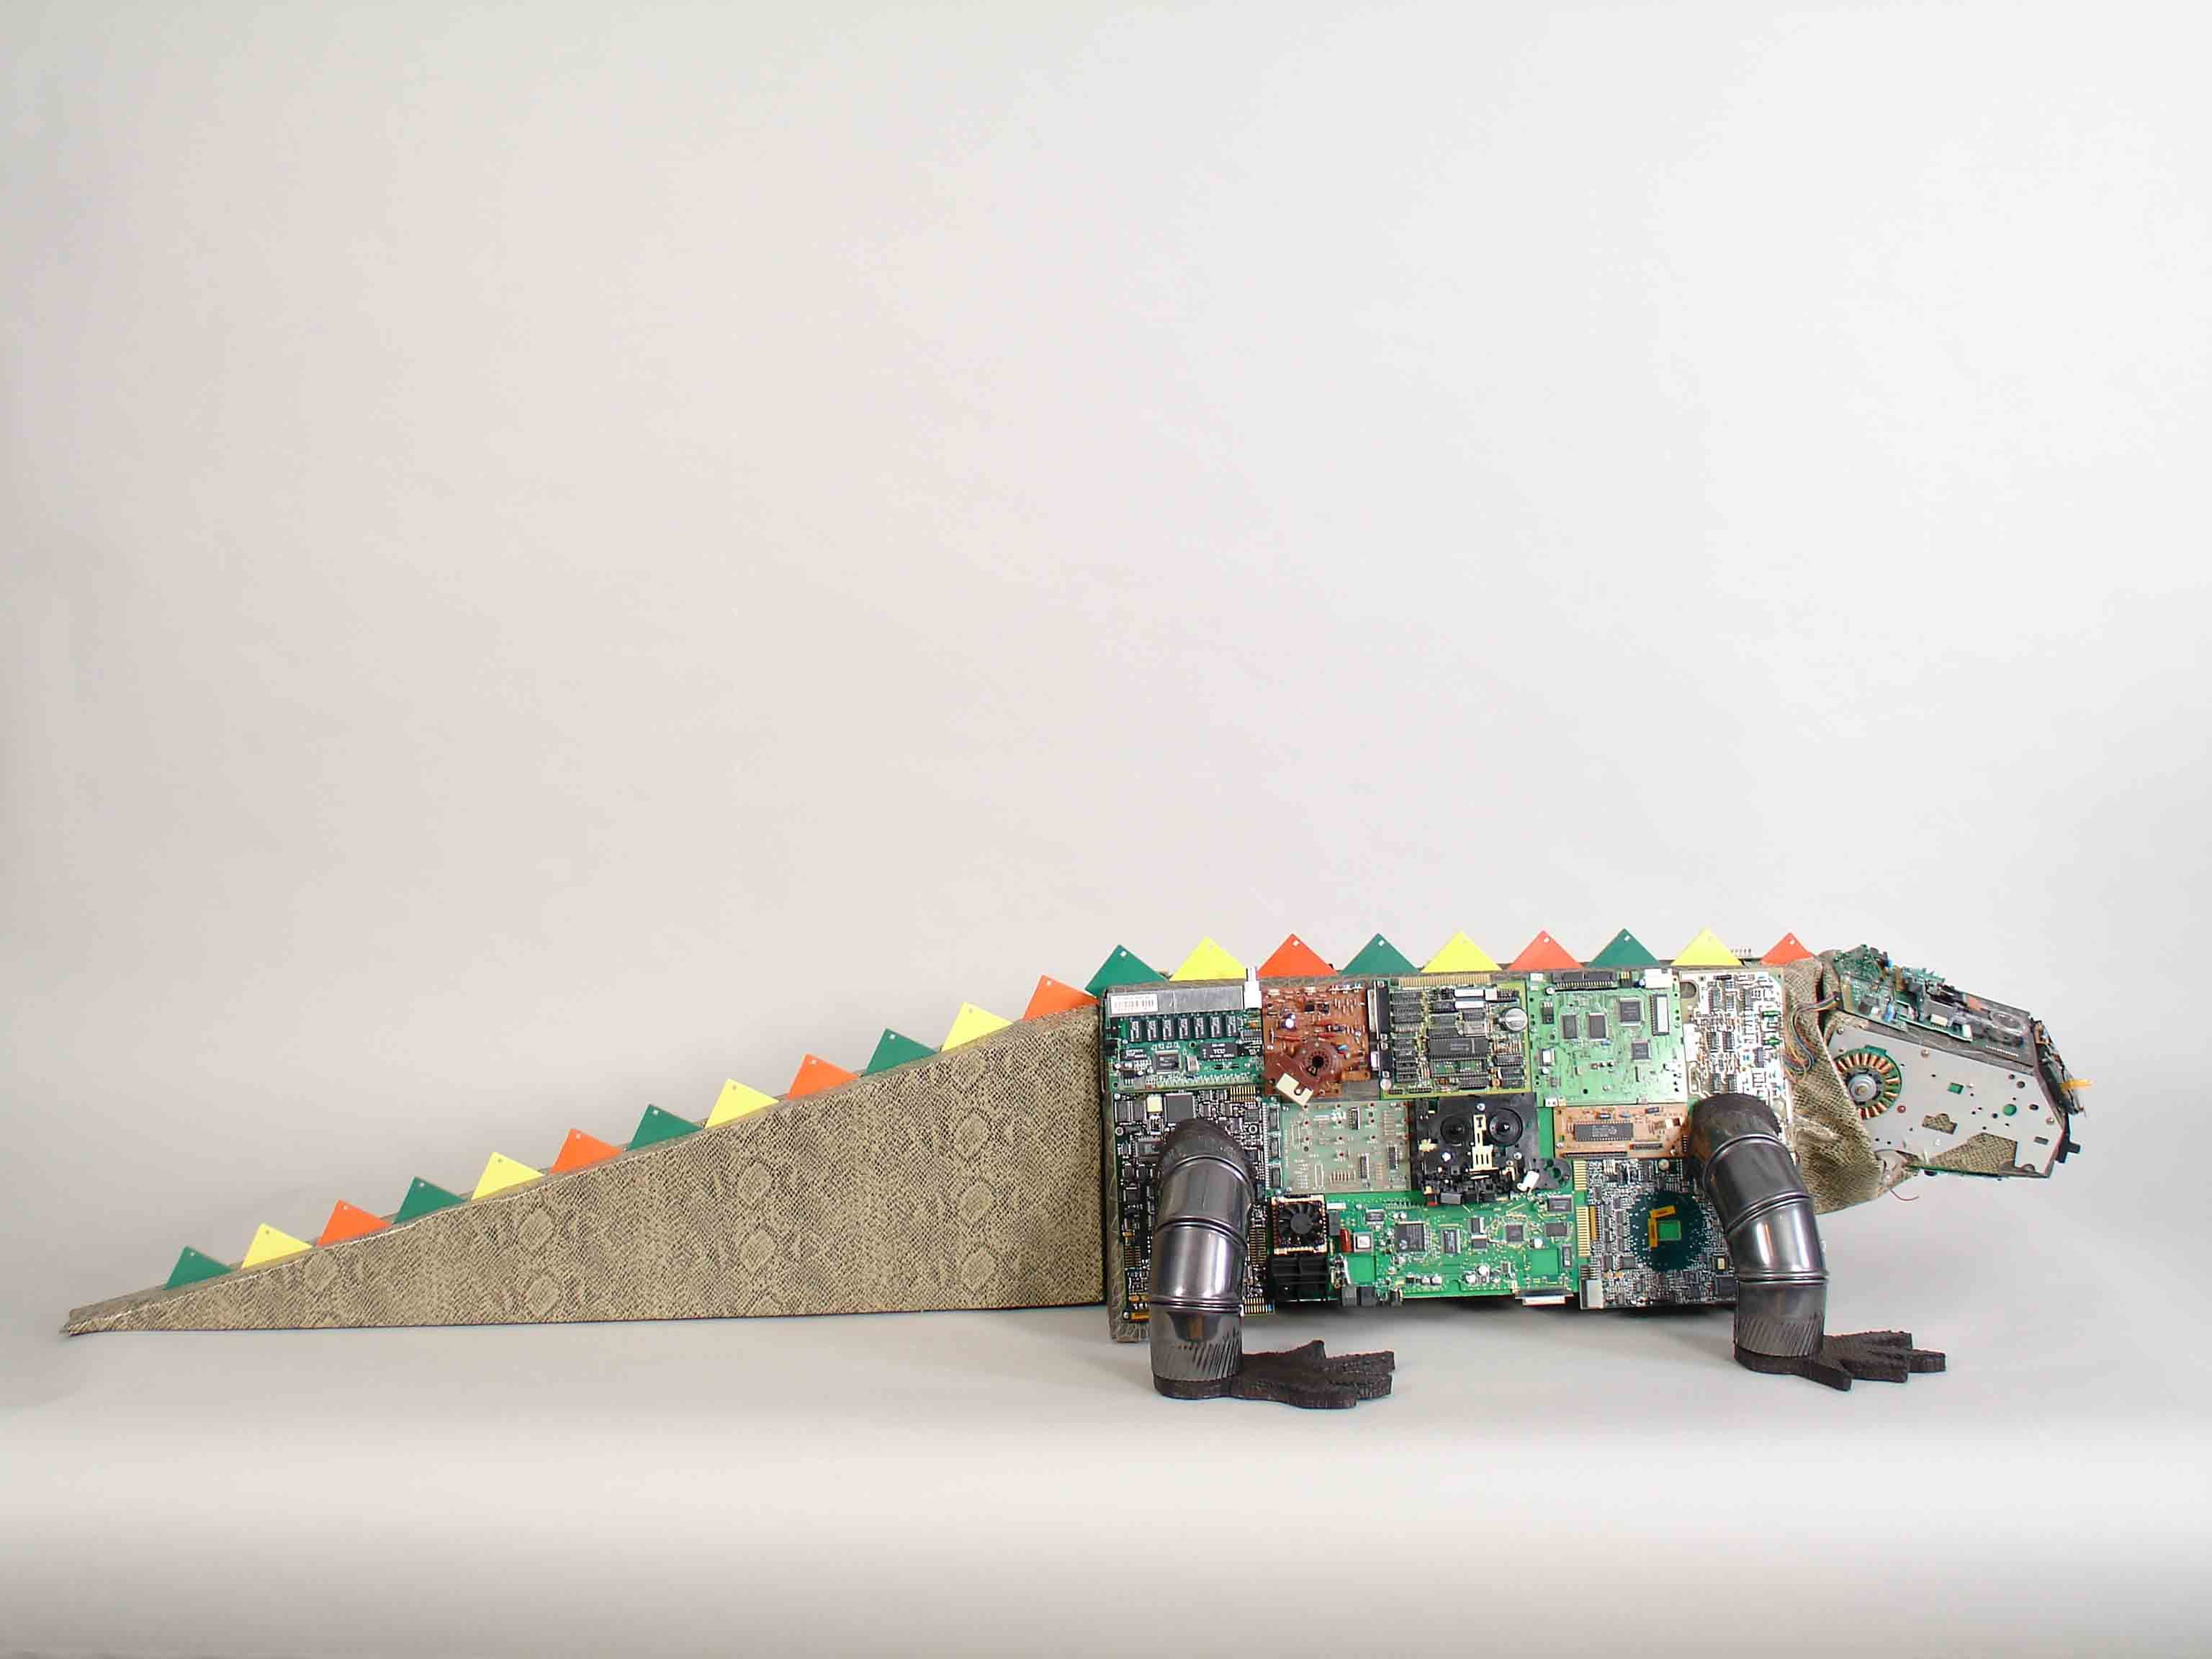 Iguanagator Is A Cross Between An Iquana And Alligator He Six Pcb Sculptures Artist Upcycles Old Circuit Boards Into Art Feet Long Very Likable Fellow Iggy Has Distinctive Head That Started Life As